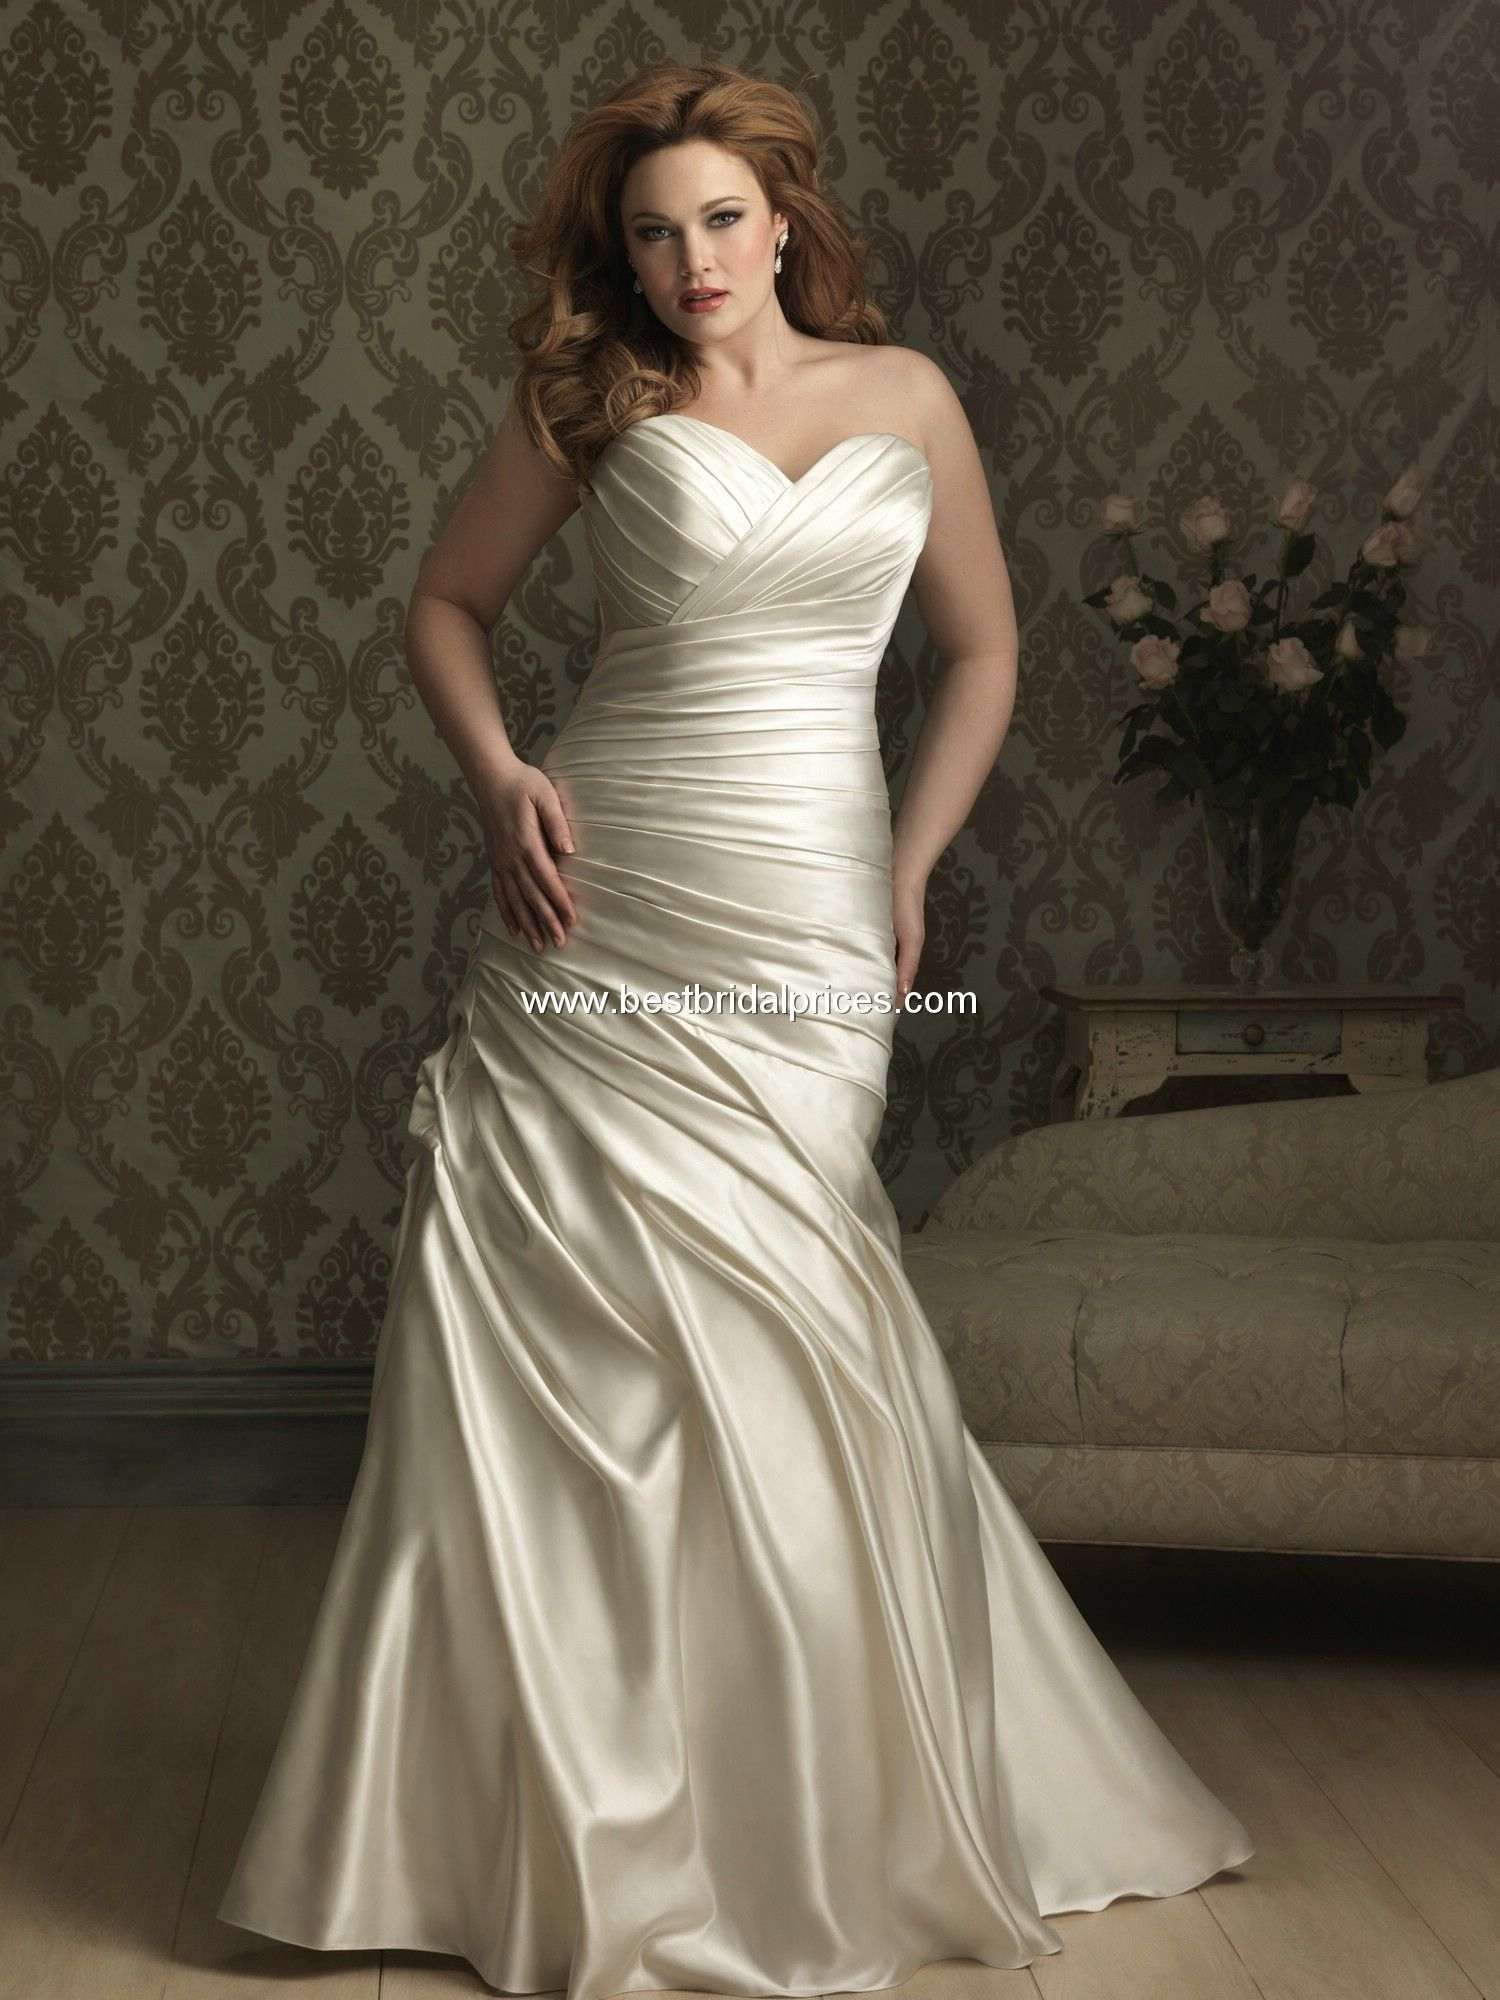 Allure women wedding dresses style w w wedding dresses